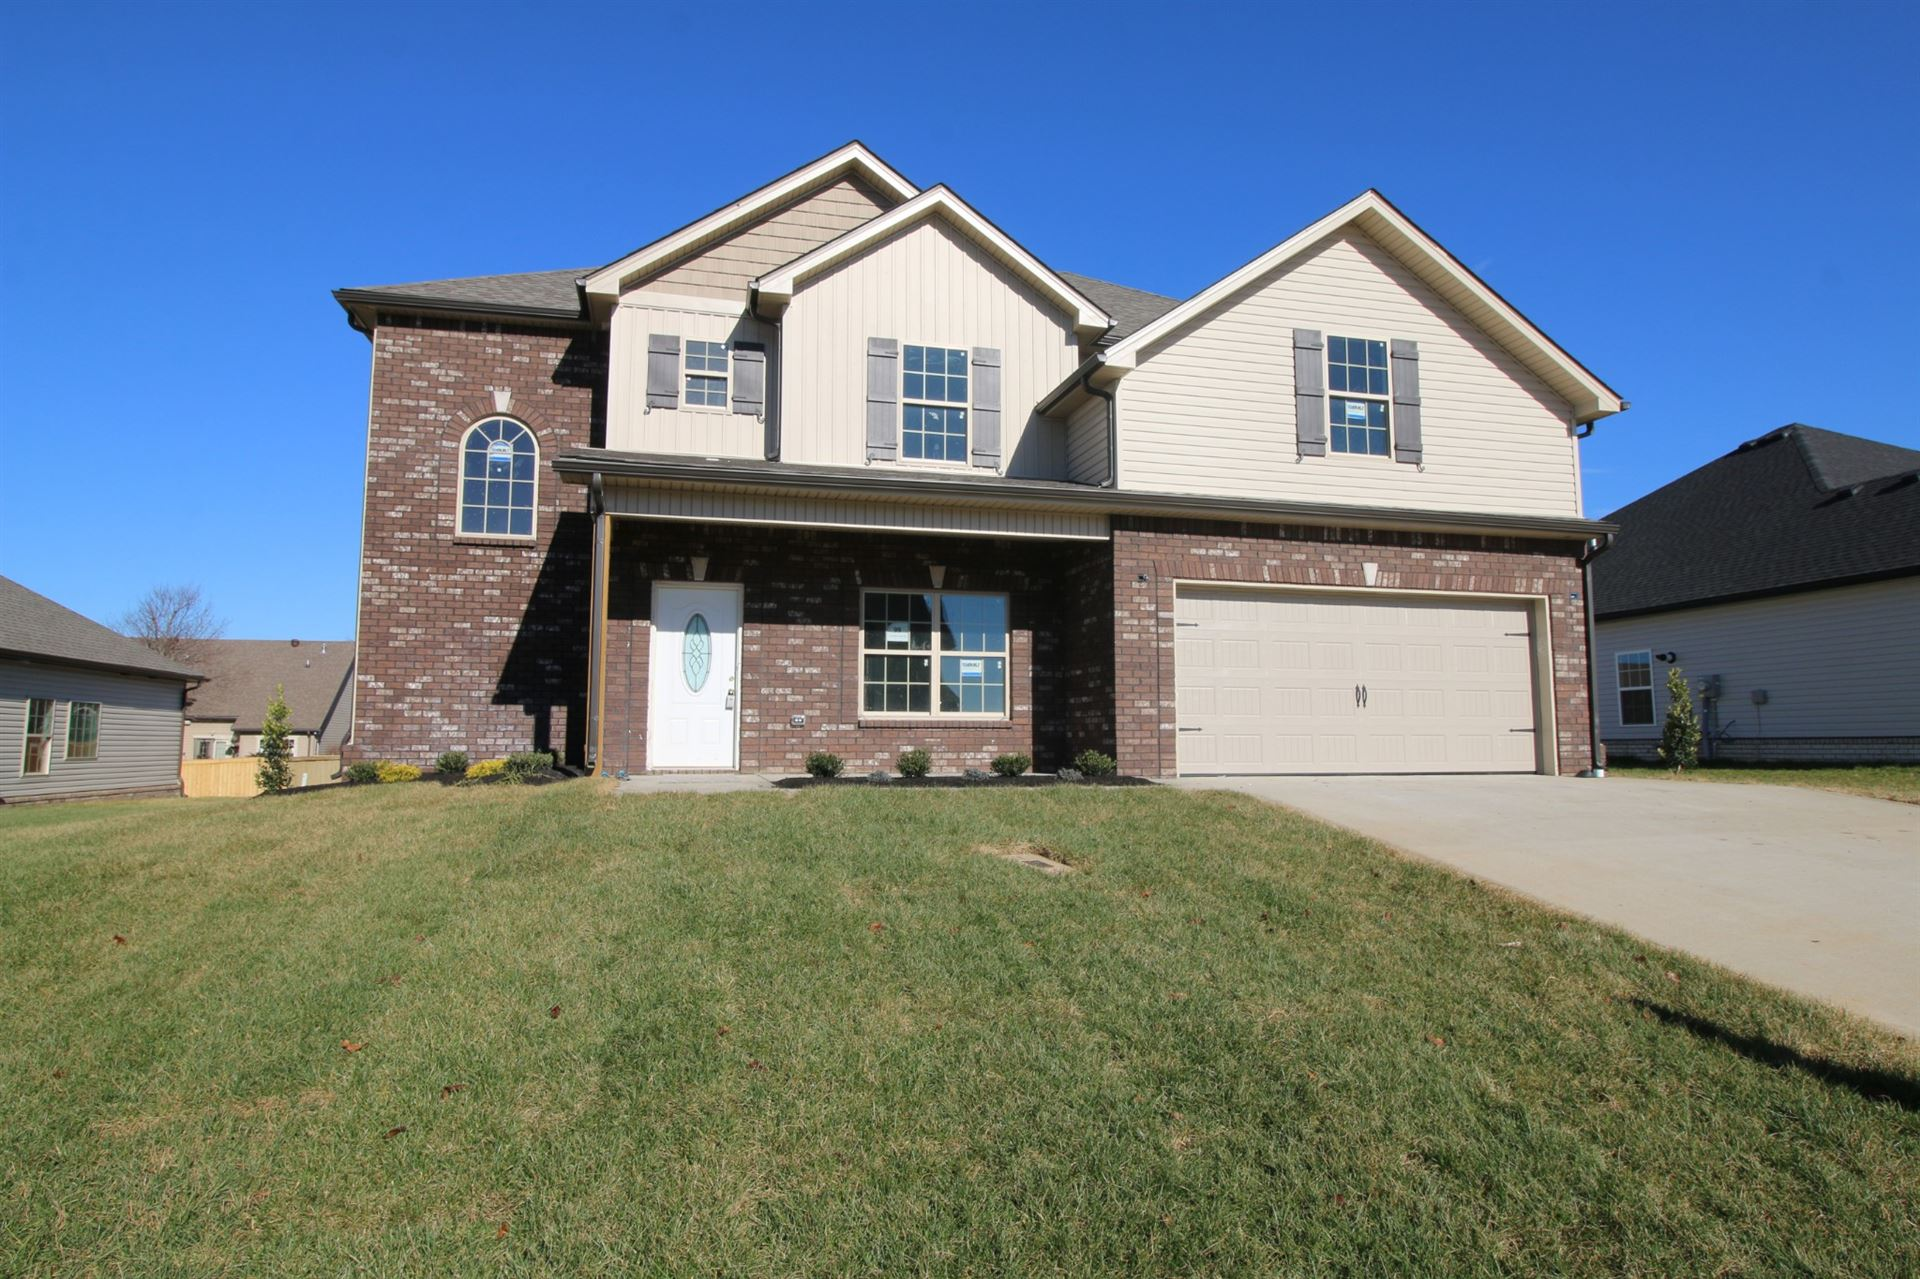 99 Reserve at Hickory Wild, Clarksville, TN 37043 - MLS#: 2183789